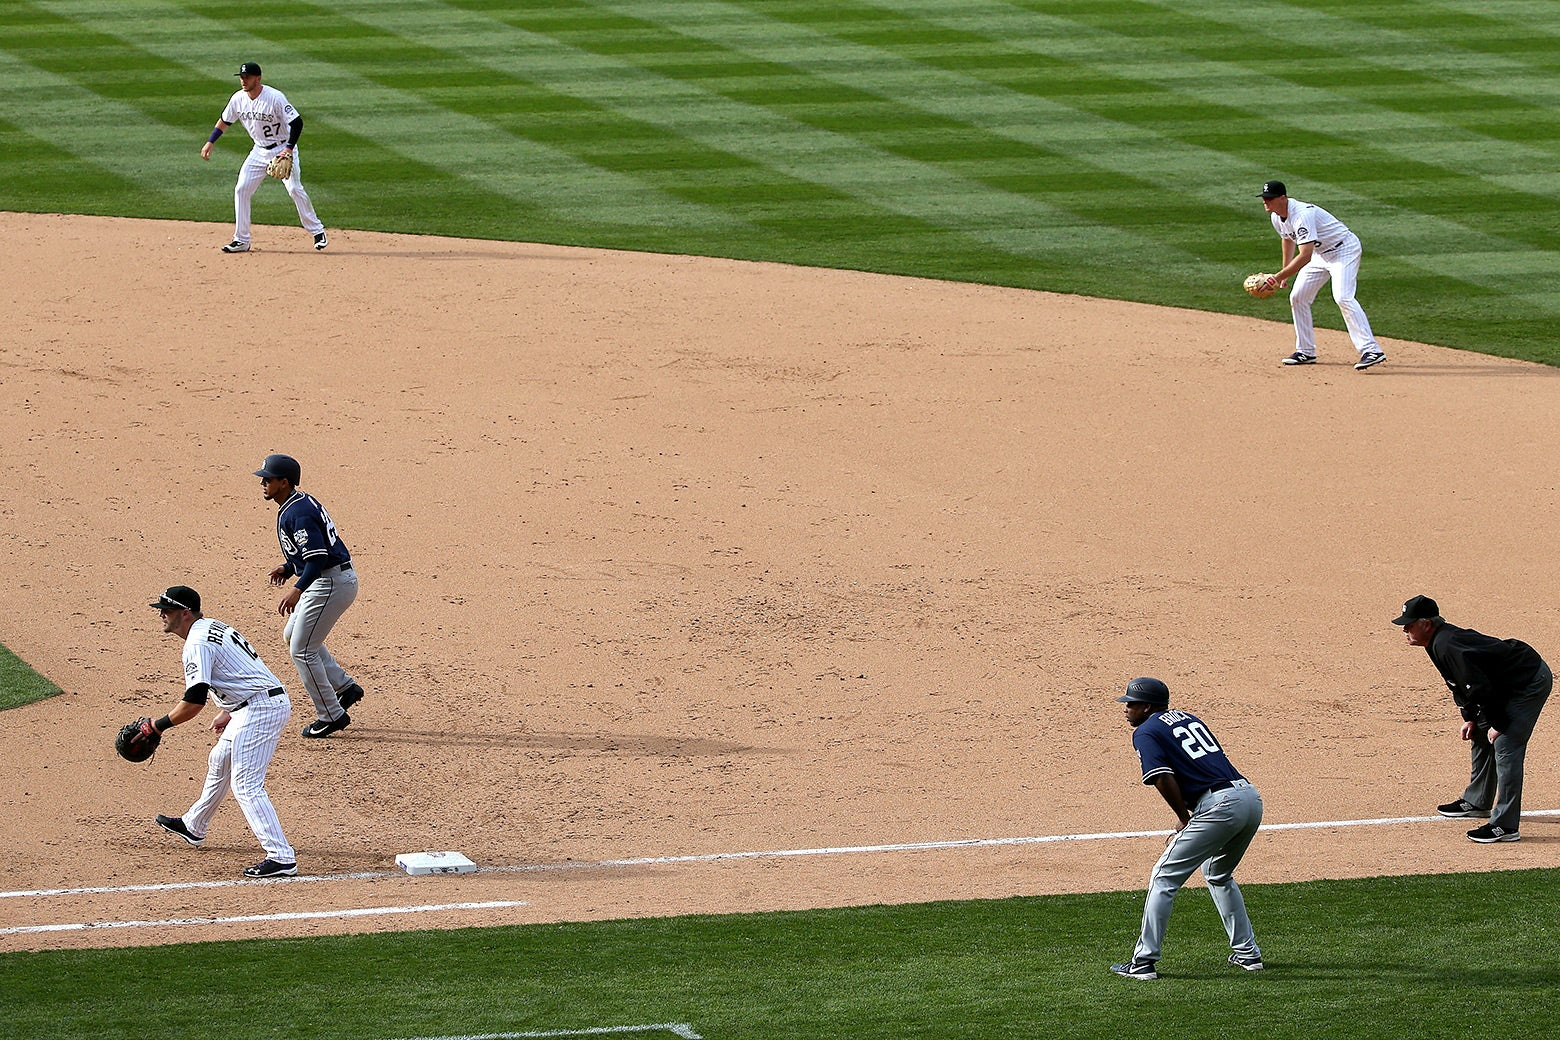 Colorado Rockies infielders Trevor Story, DJ LeMahieu, and Mark Reynolds play a defensive shift against the San Diego Padres on Apr. 8, 2016.